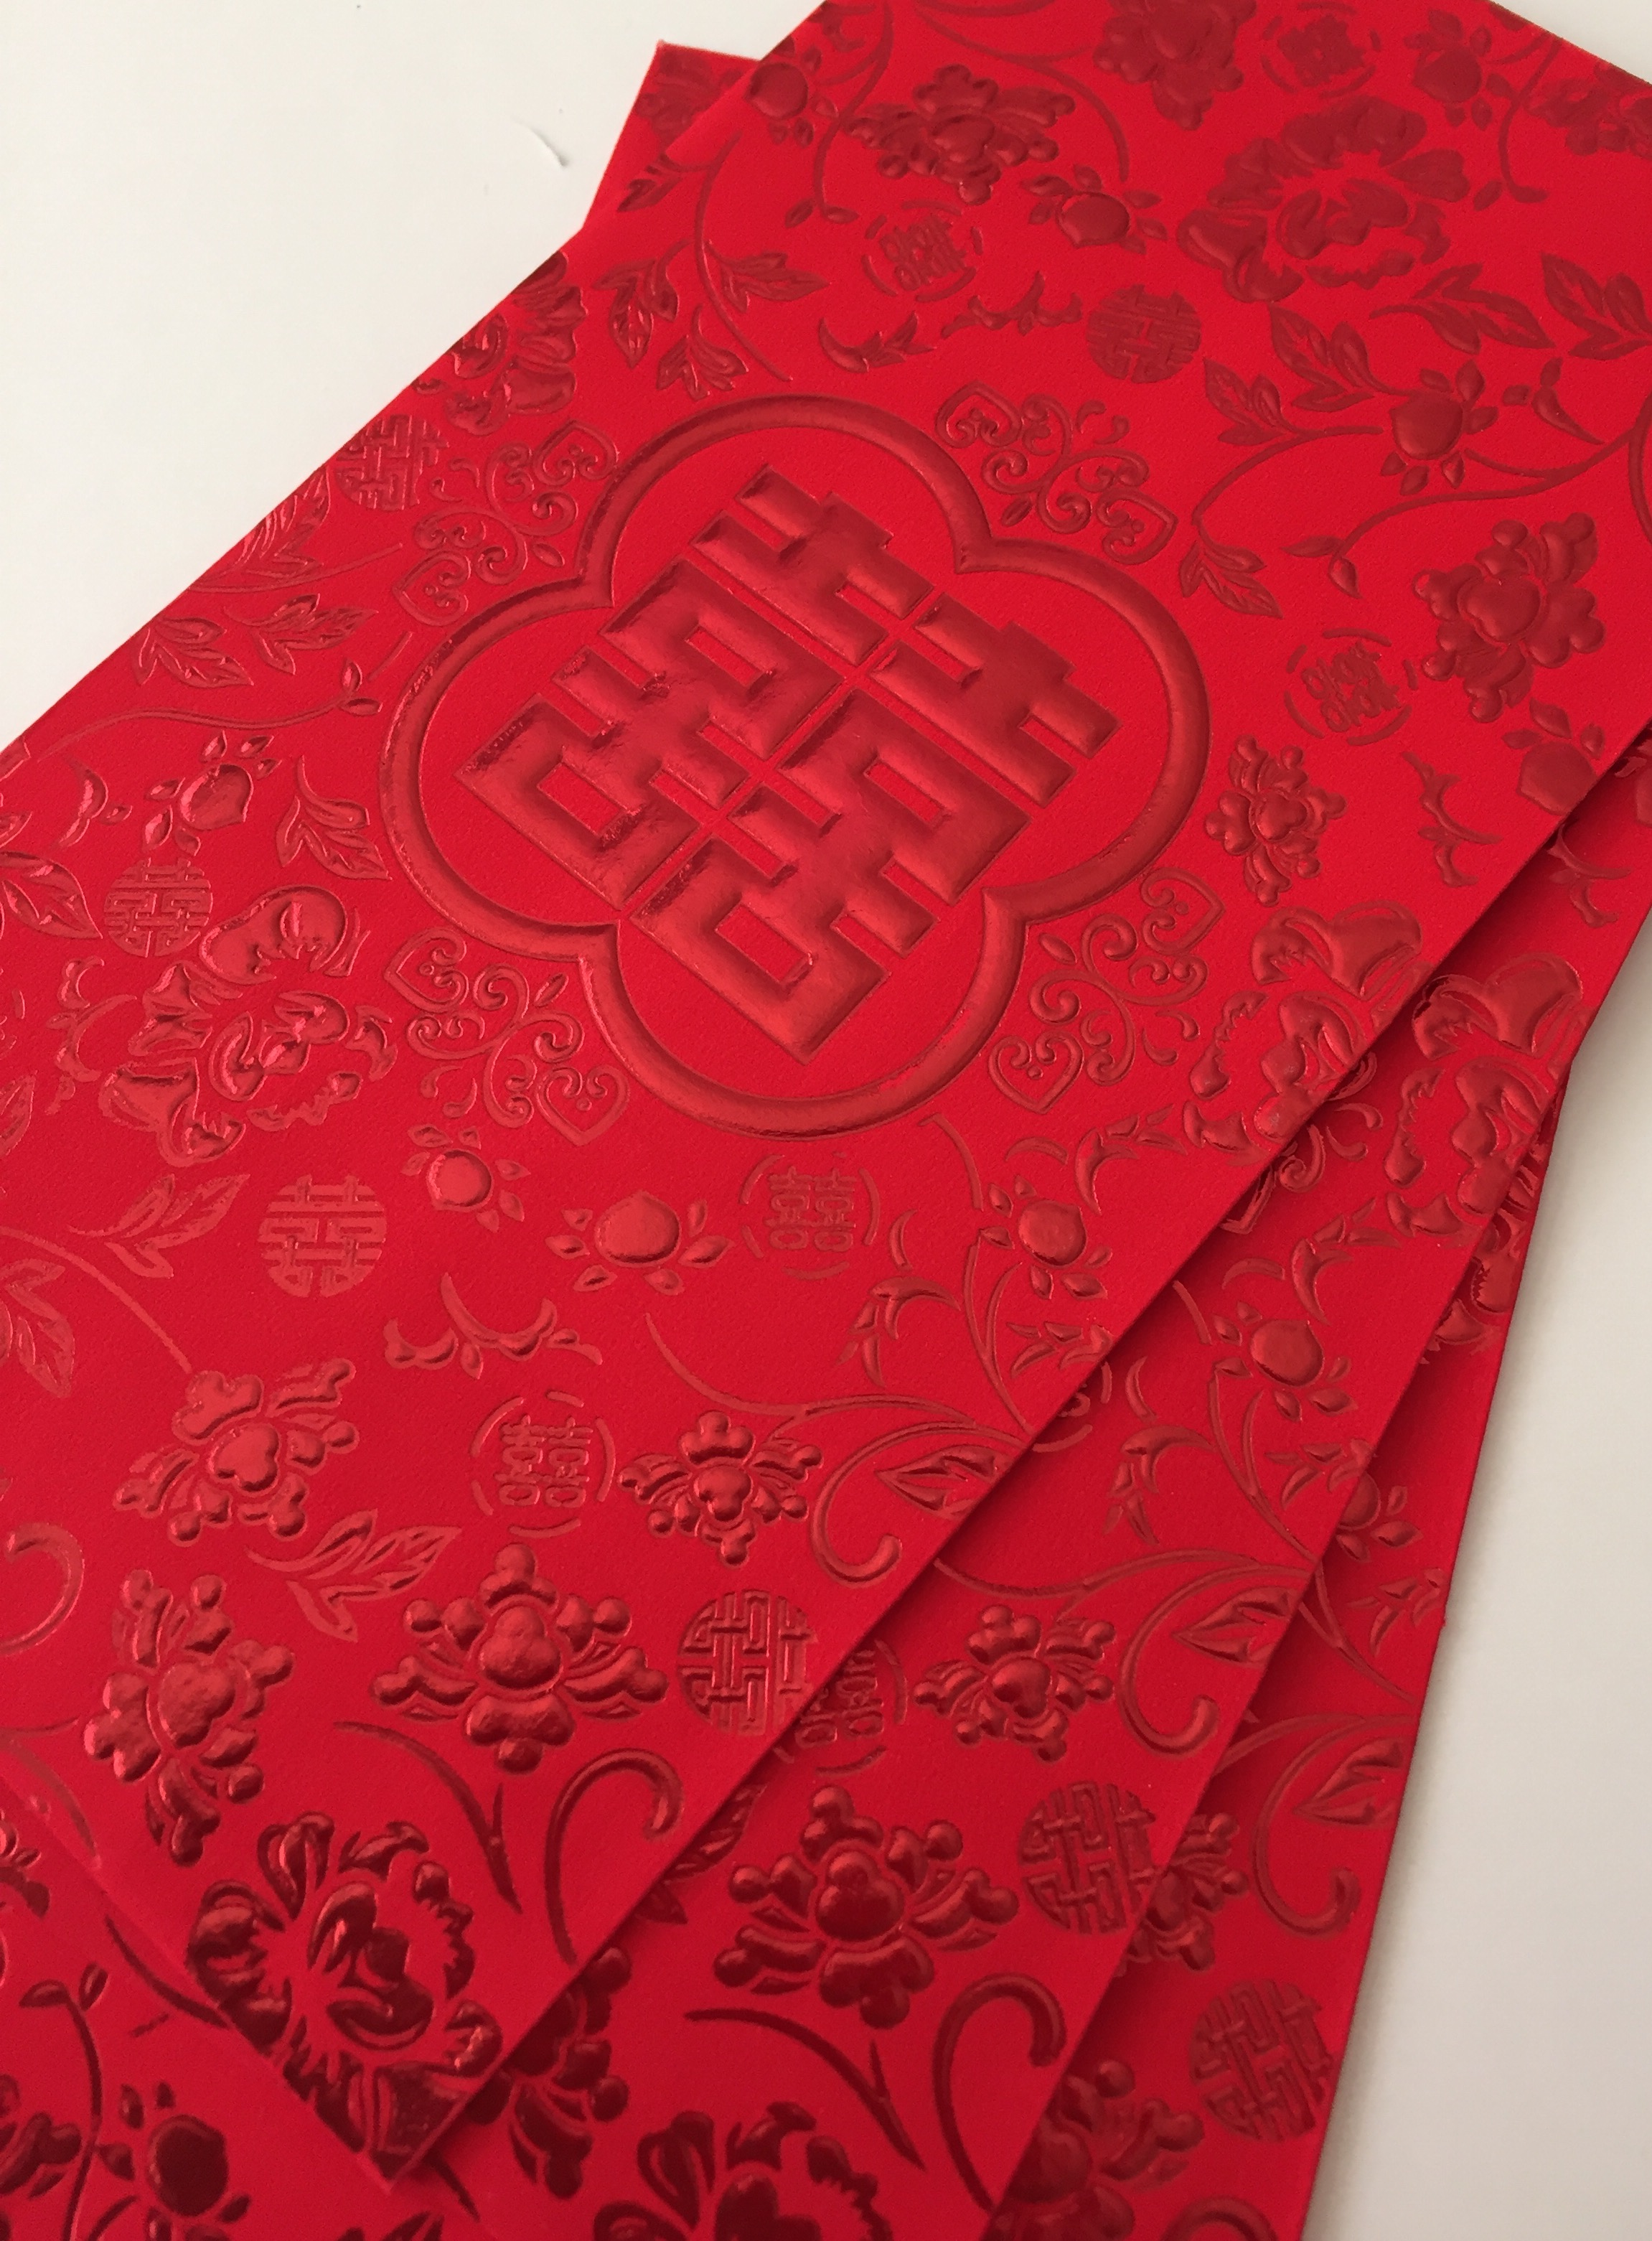 Scented Red Envelopes.jpg